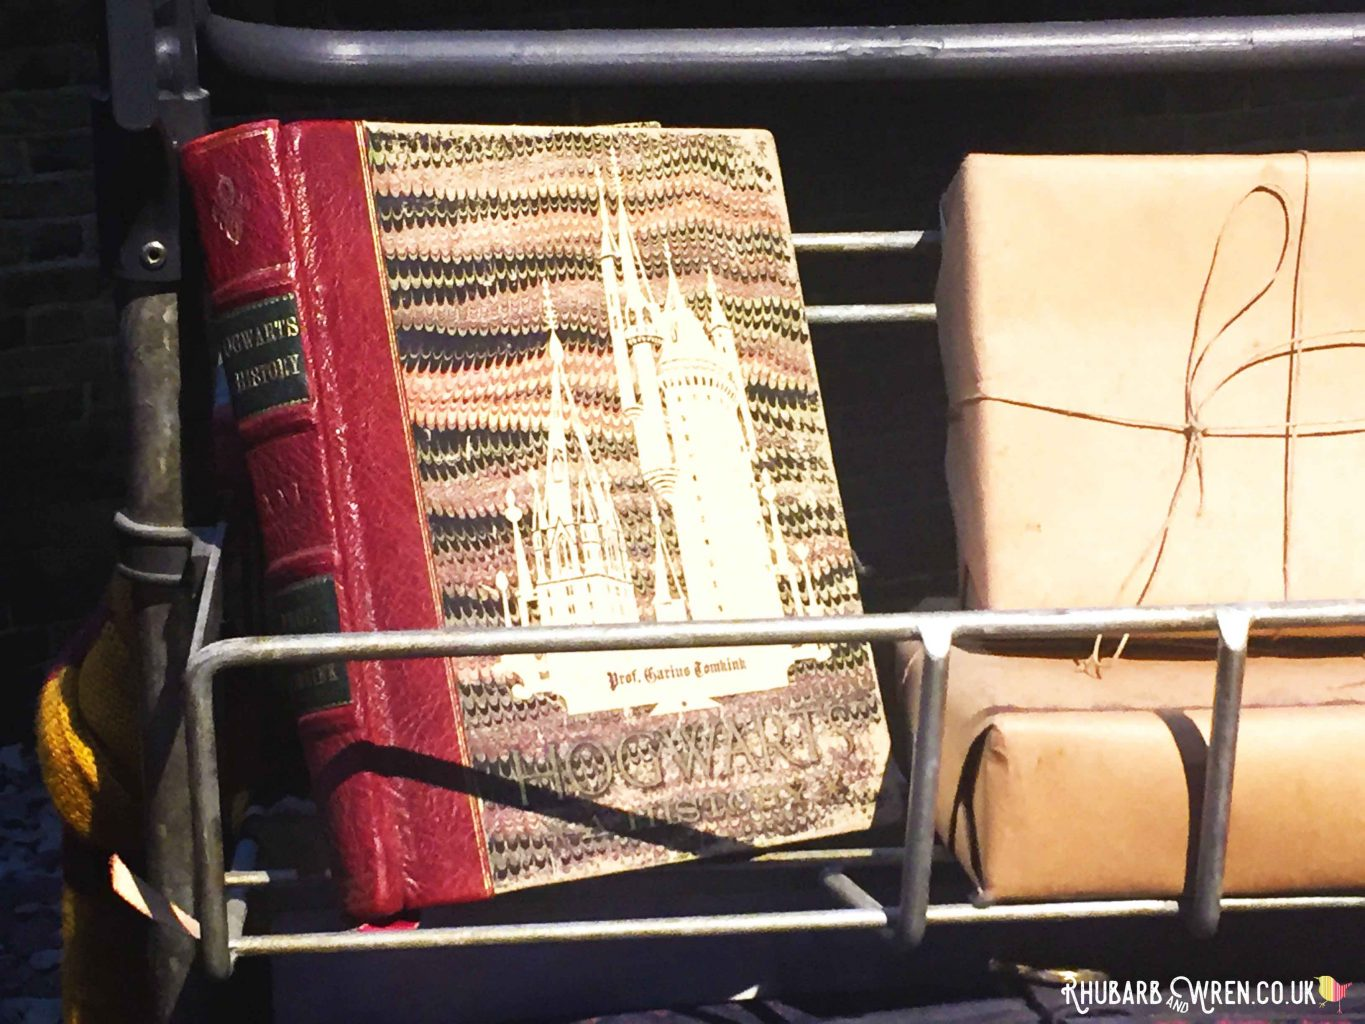 Guess the Luggage game at the Harry Potter studio tour